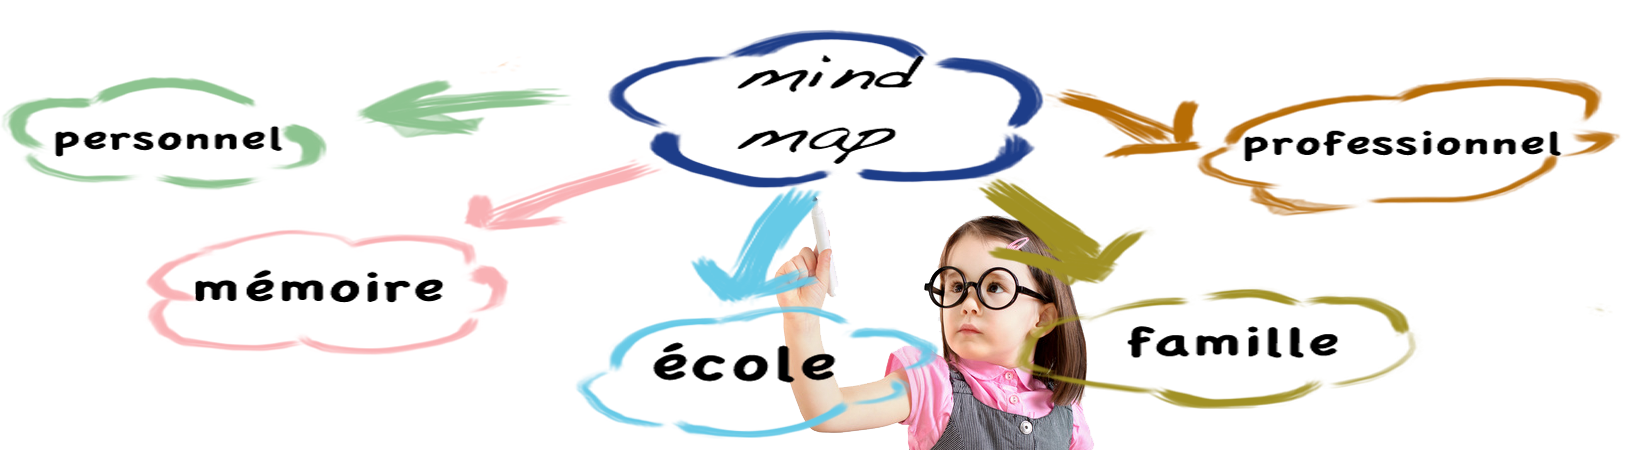 Quel est le but du mind mapping?